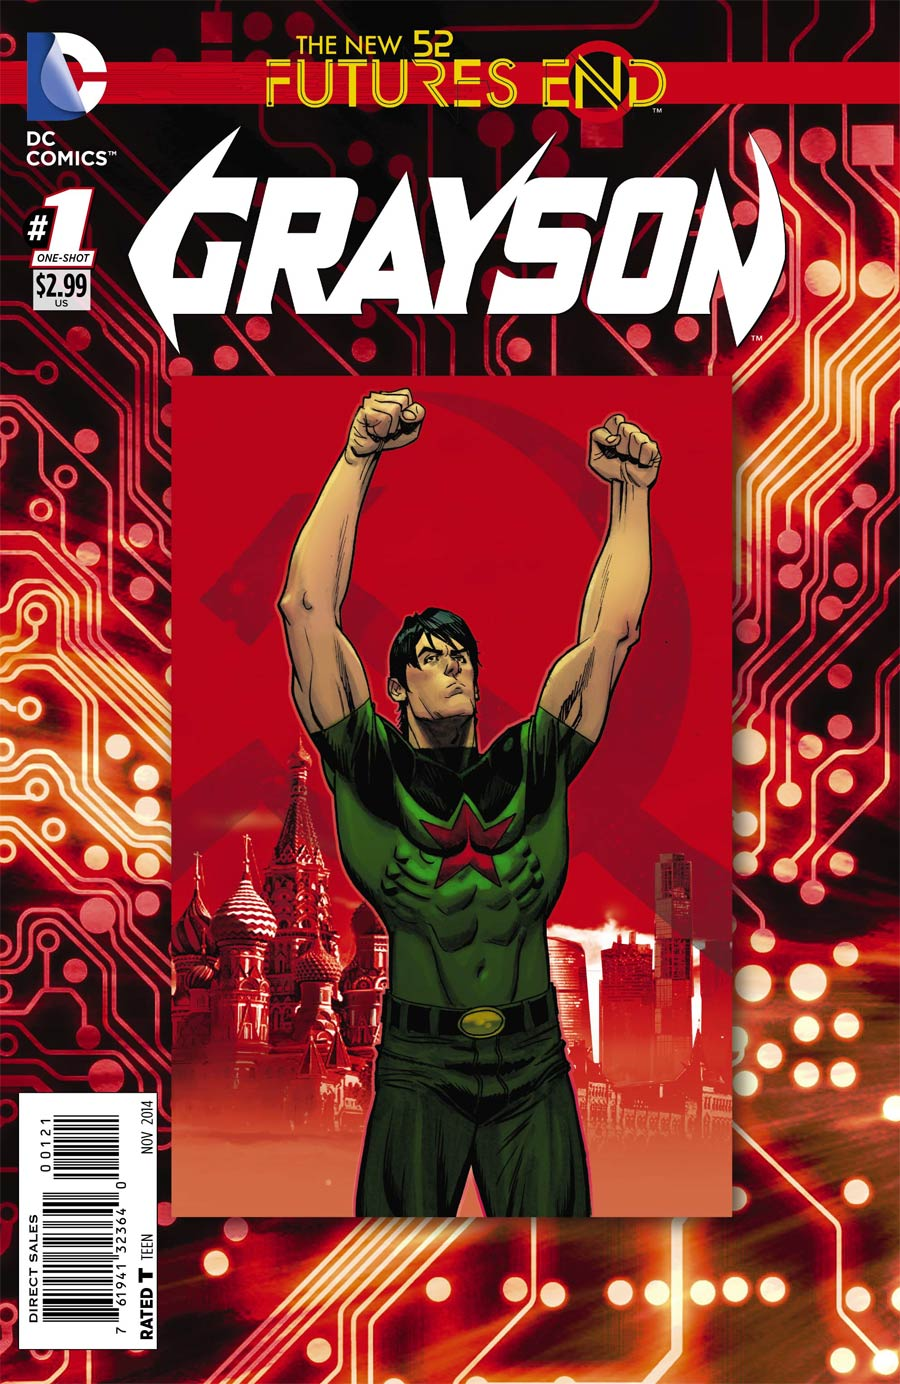 Grayson Futures End #1 Cover B Standard Cover